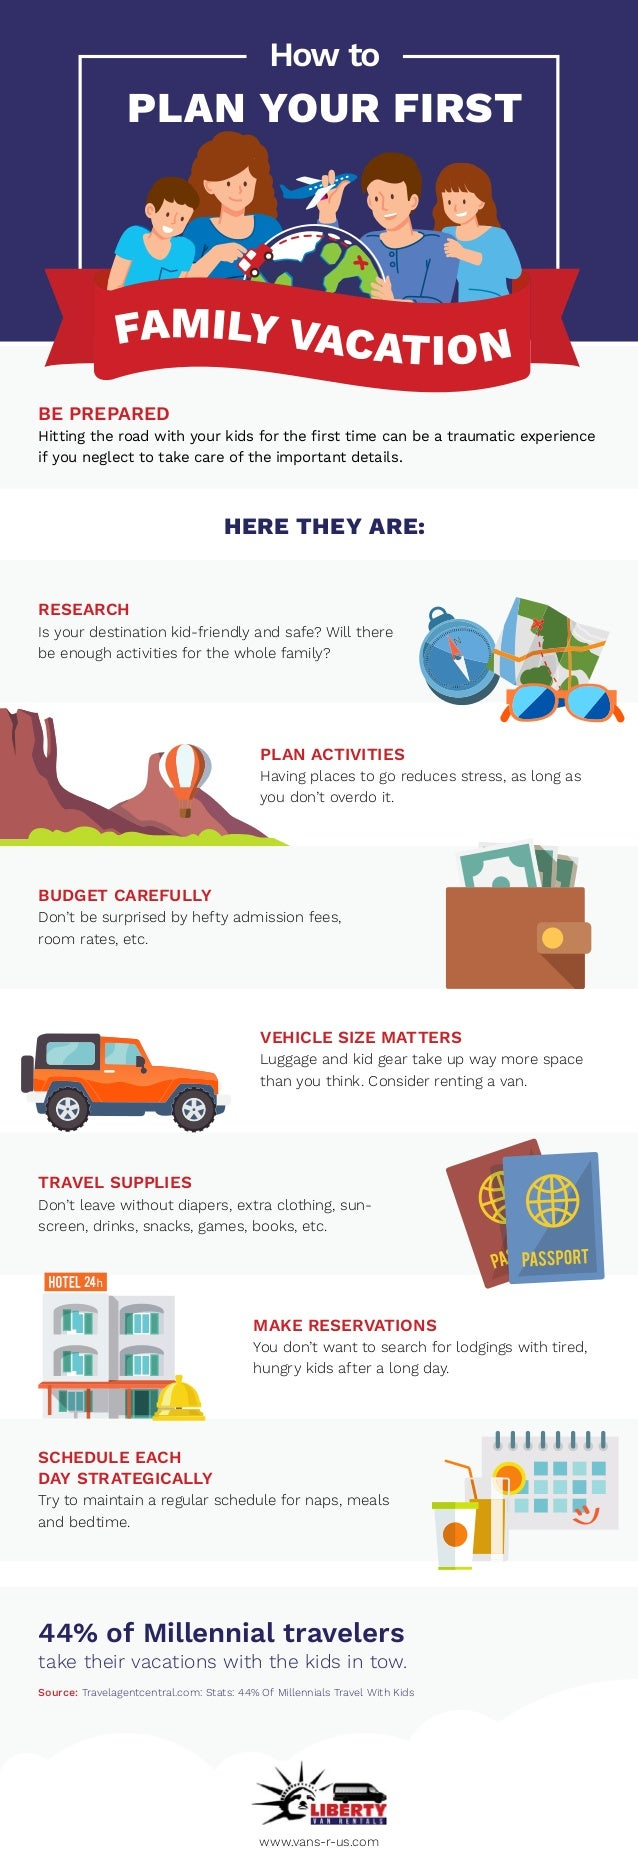 BE PREPARED Hitting the road with your kids for the first time can be a traumatic experience if you neglect to take care o...